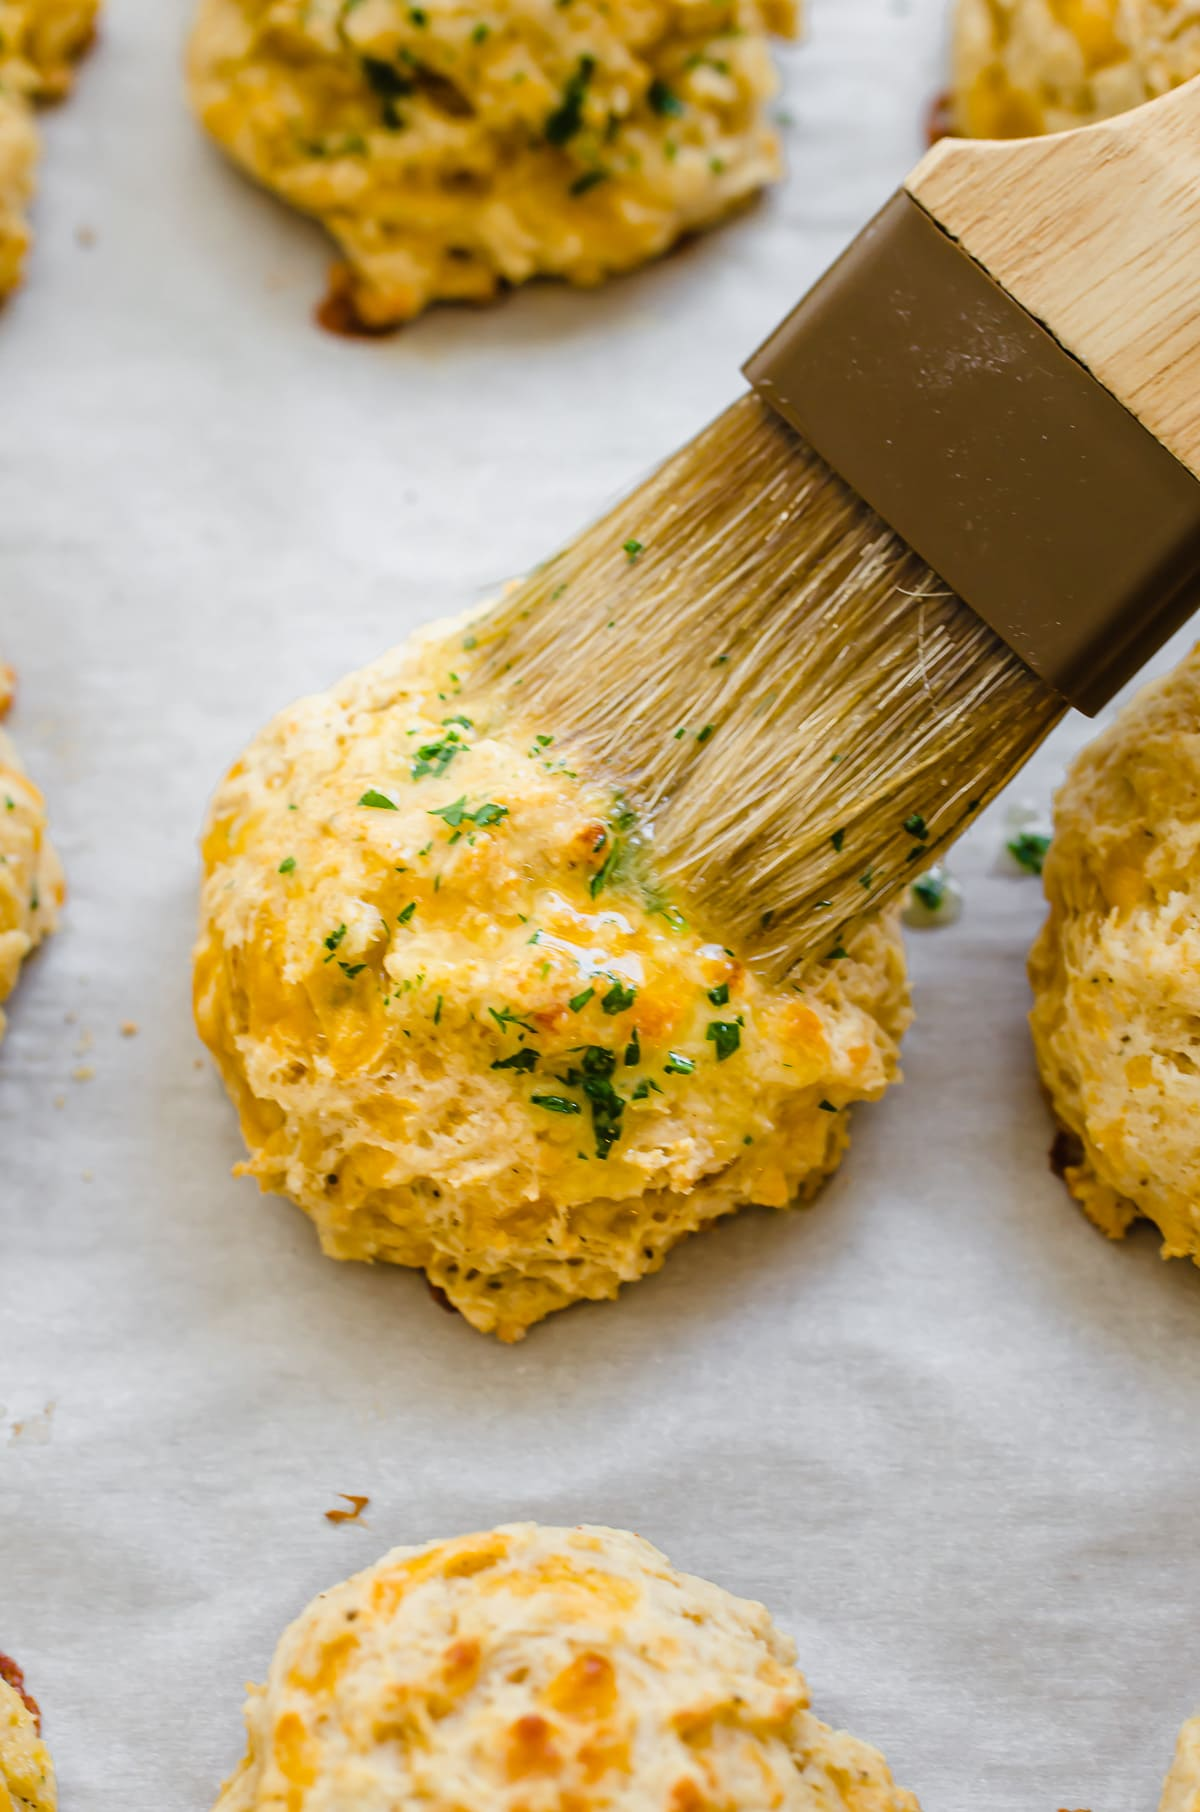 A brush spreading on butter herb topping on a cheddar bay biscuit.